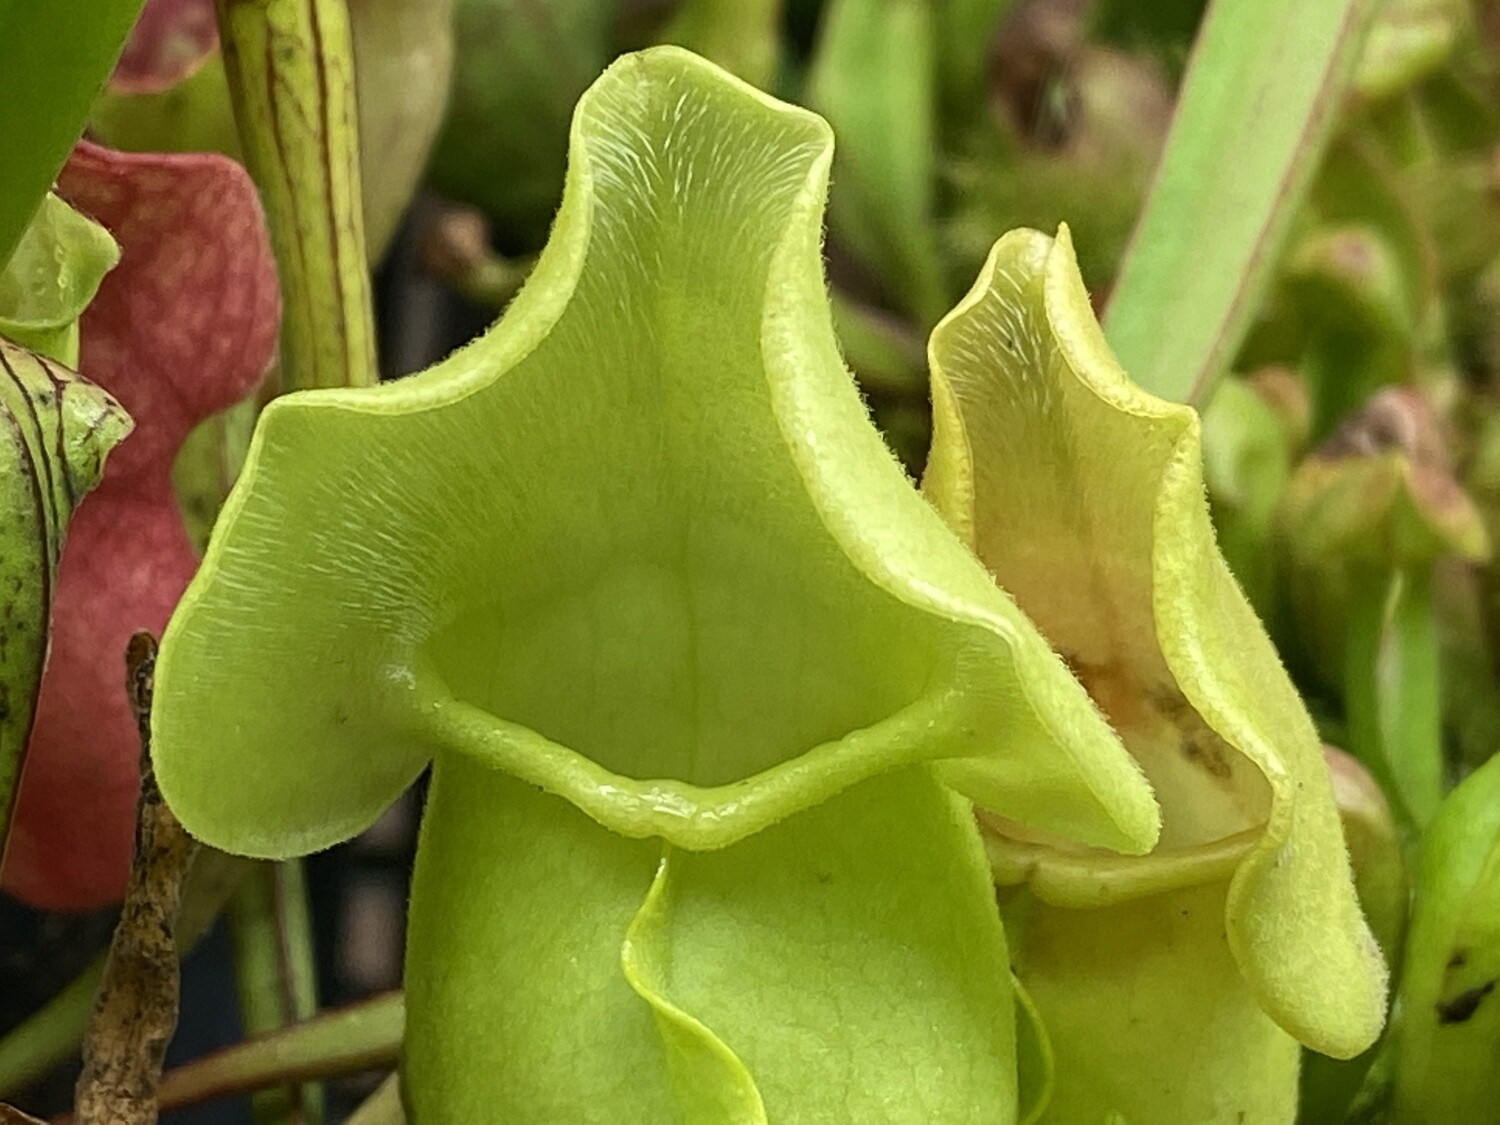 Sarracenia purpurea f. heterophylla - Amazing Bright Green!